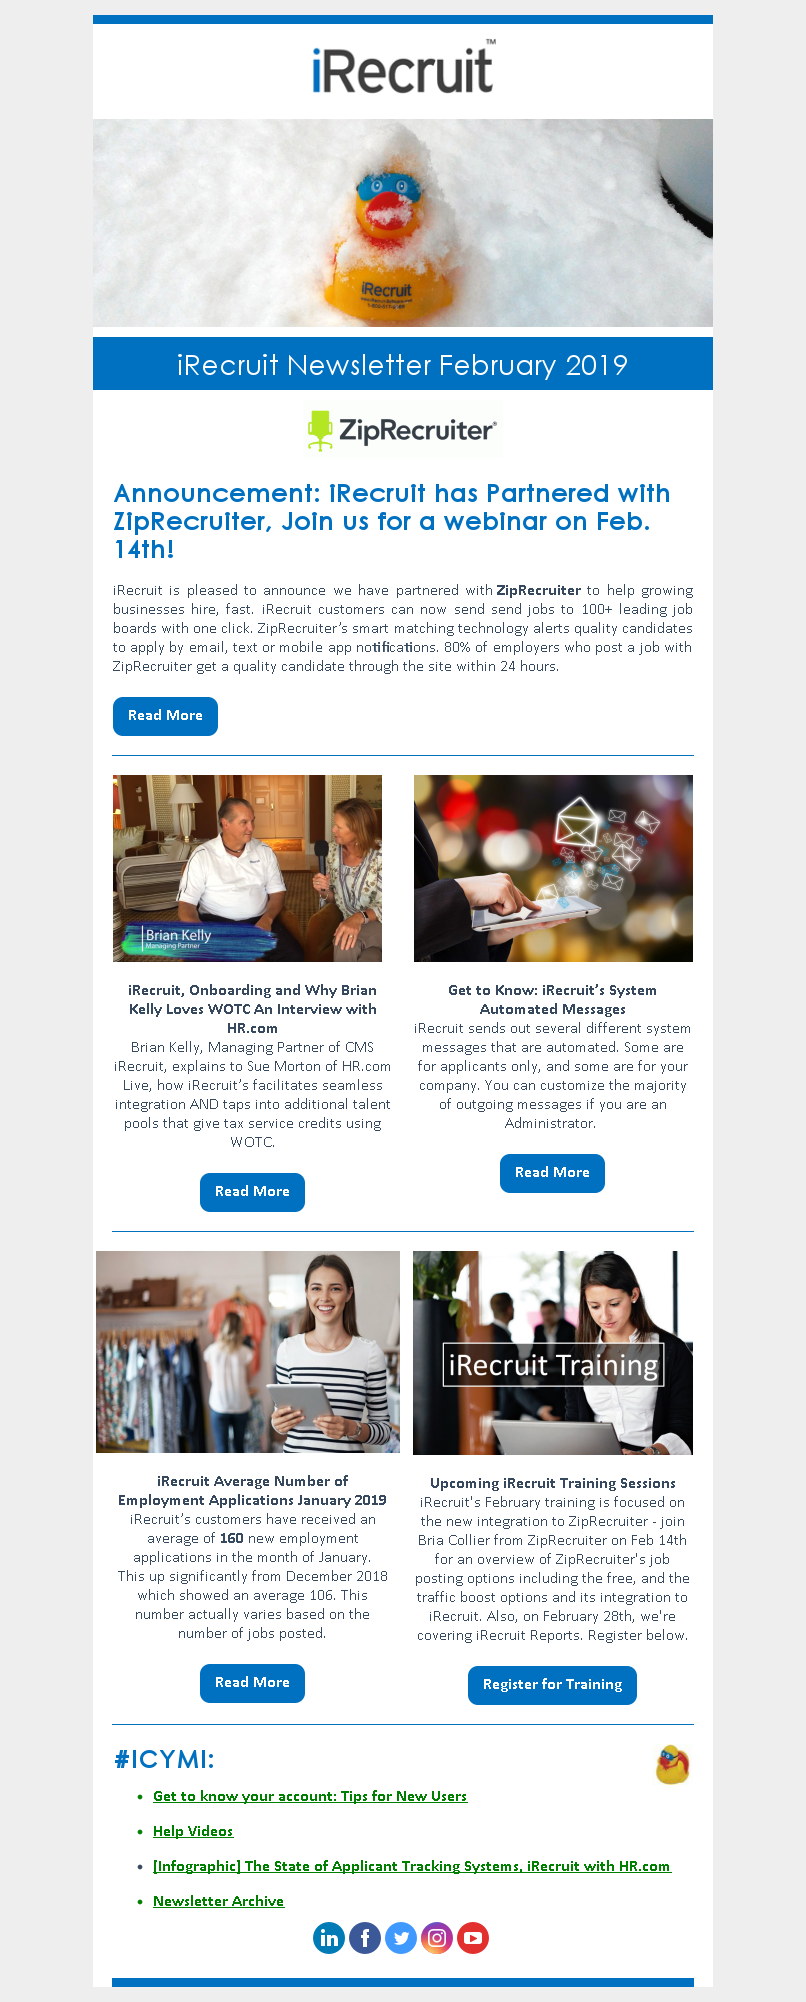 iRecruit Customer Newsletter February 2019